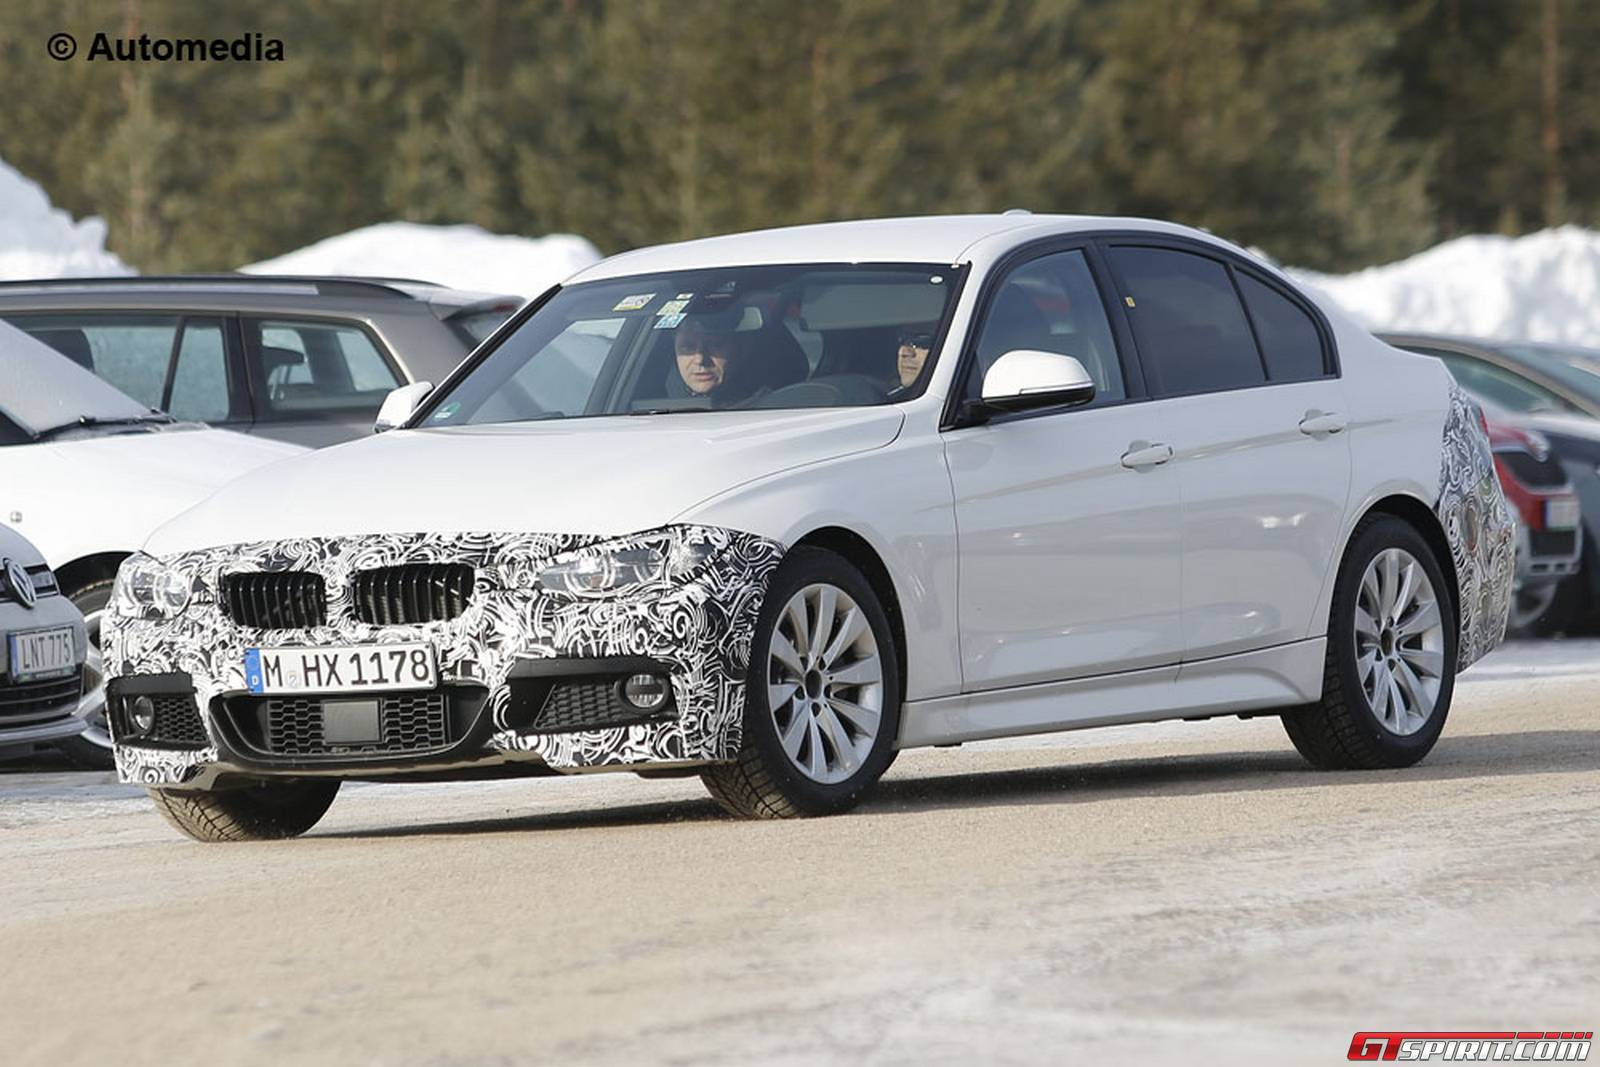 Spy Shots BMW 3 Series Price and Review